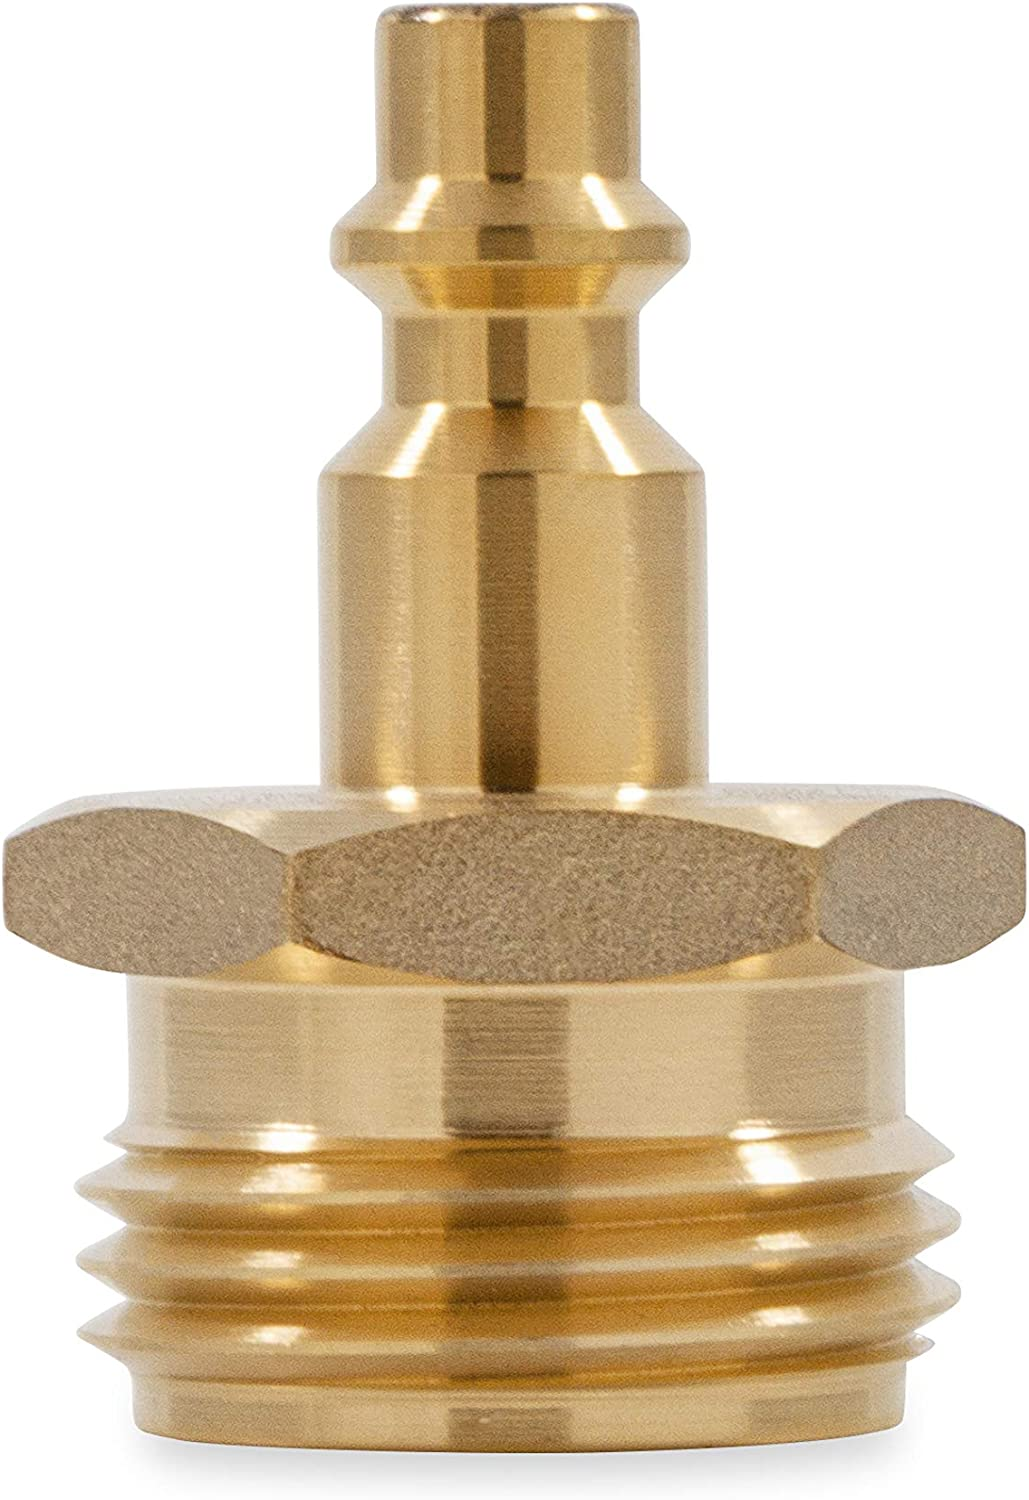 Camco Blow Out Plug With Brass Quick Connect-Aids In Removal of Water From Water Lines (36143): Automotive